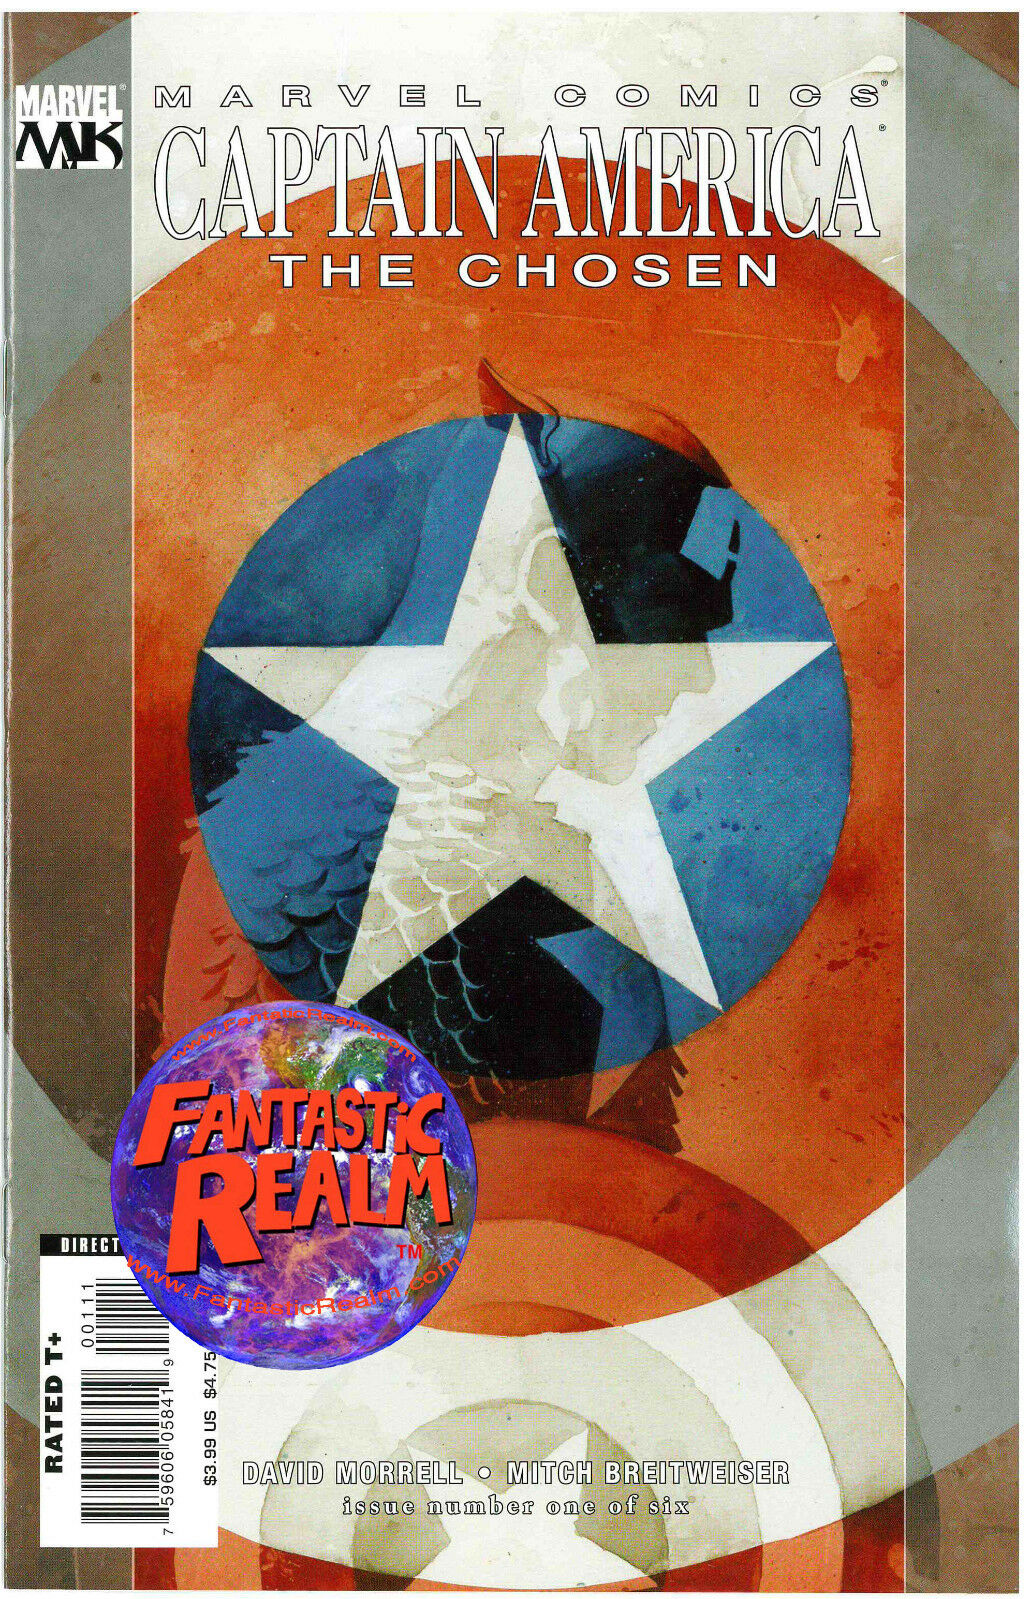 CAPTAIN AMERICA #1: THE CHOSEN MARVEL COMICS